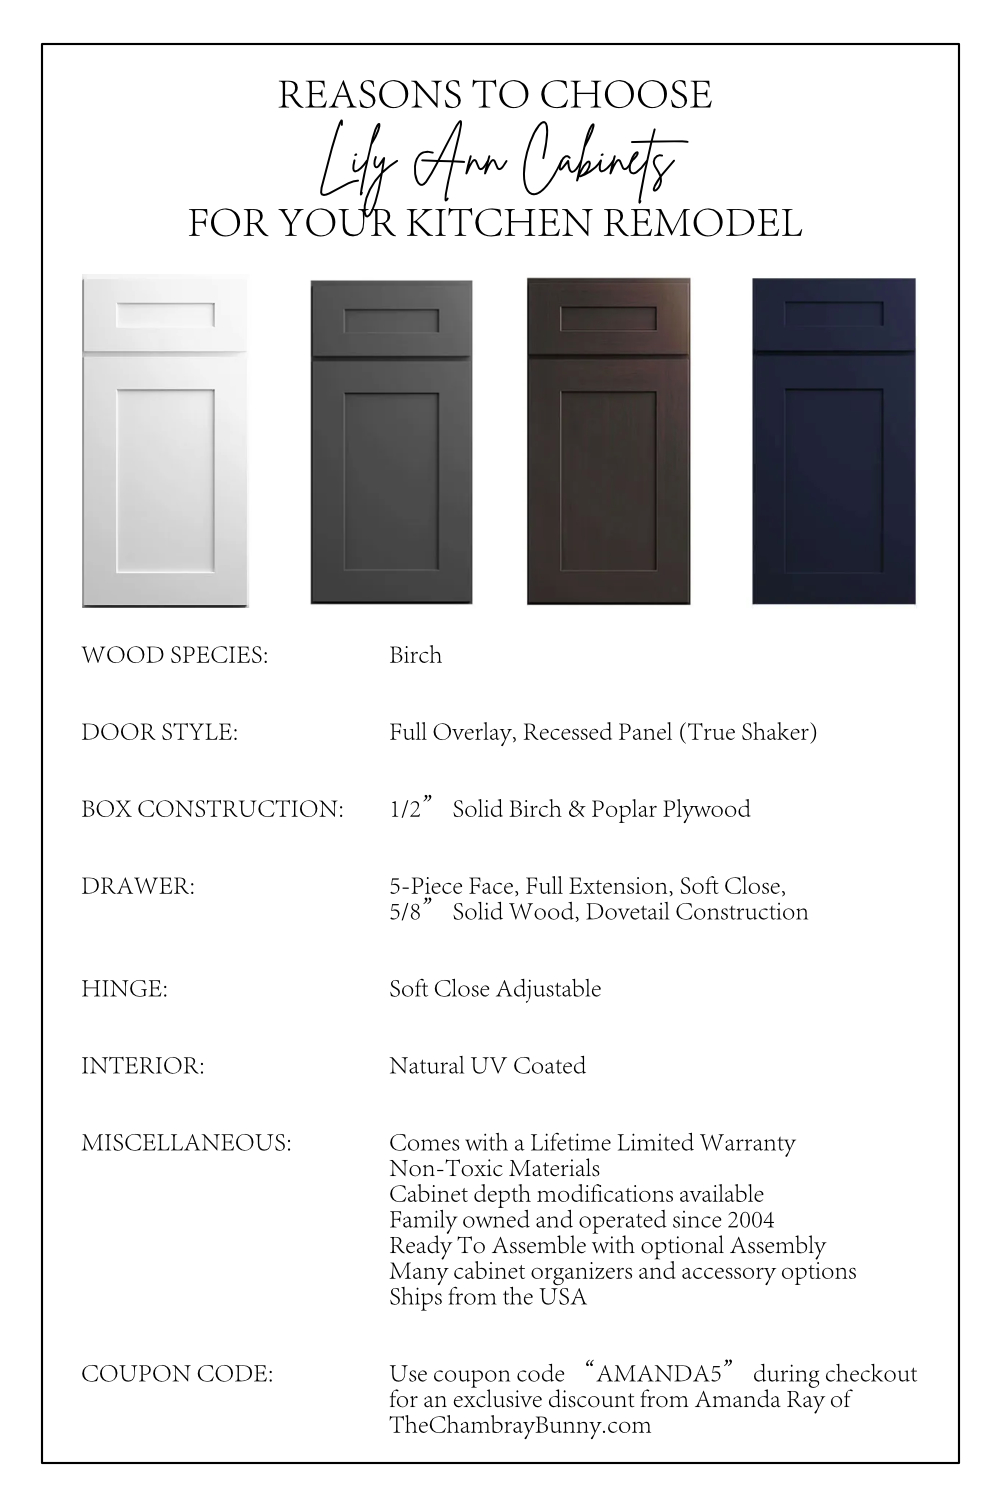 Why Choose Lily Ann Cabinets